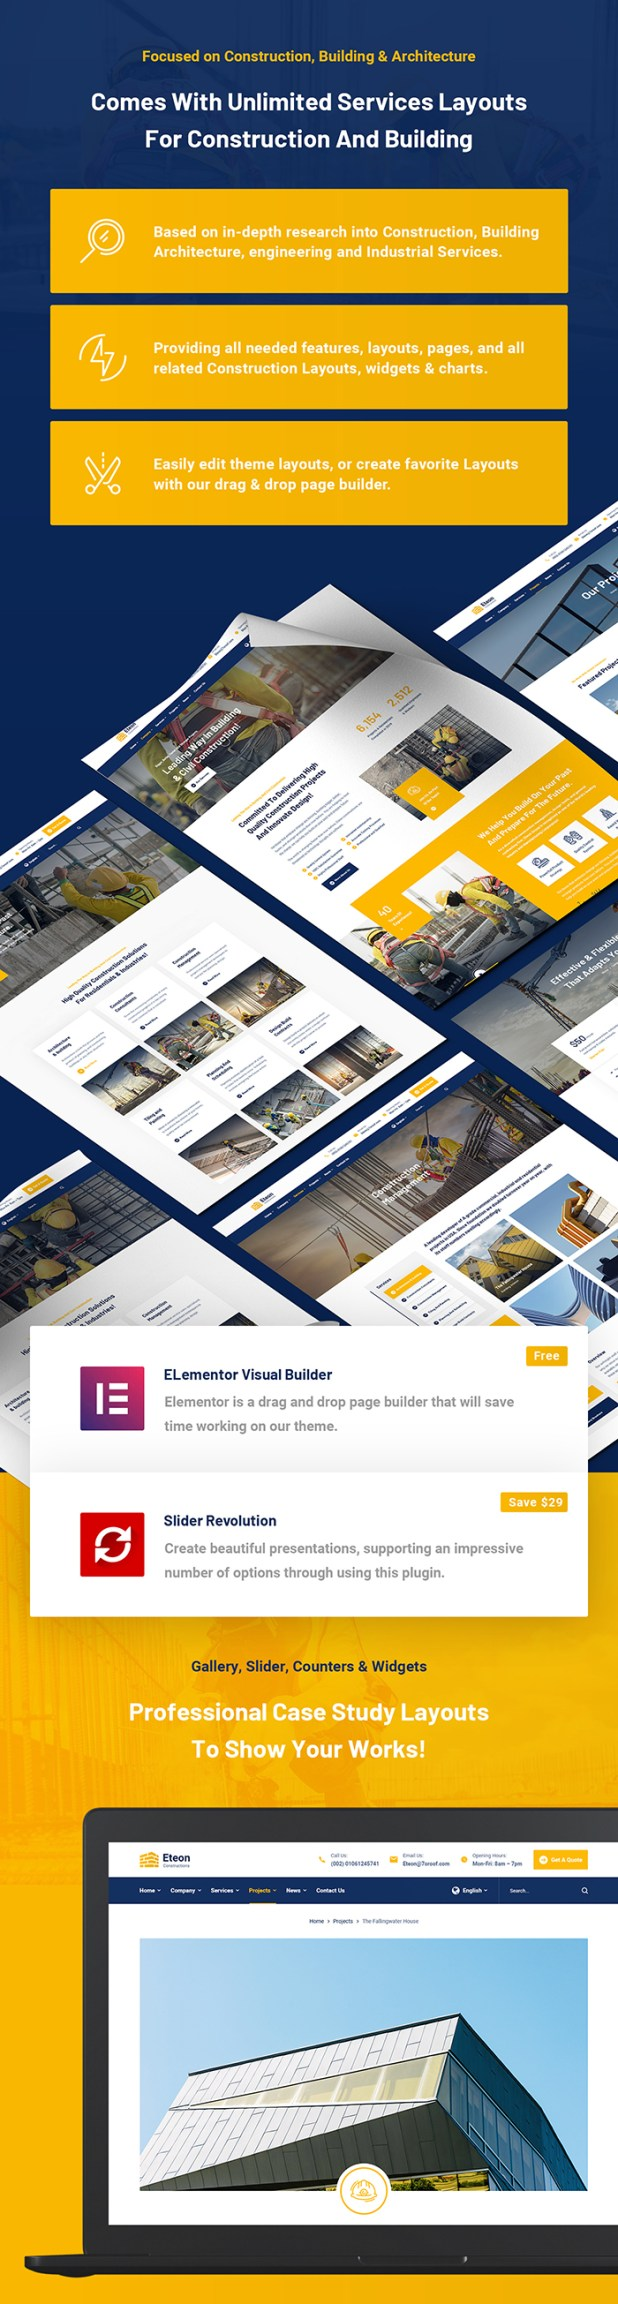 Eteon - Construction And Building WordPress Theme - 6